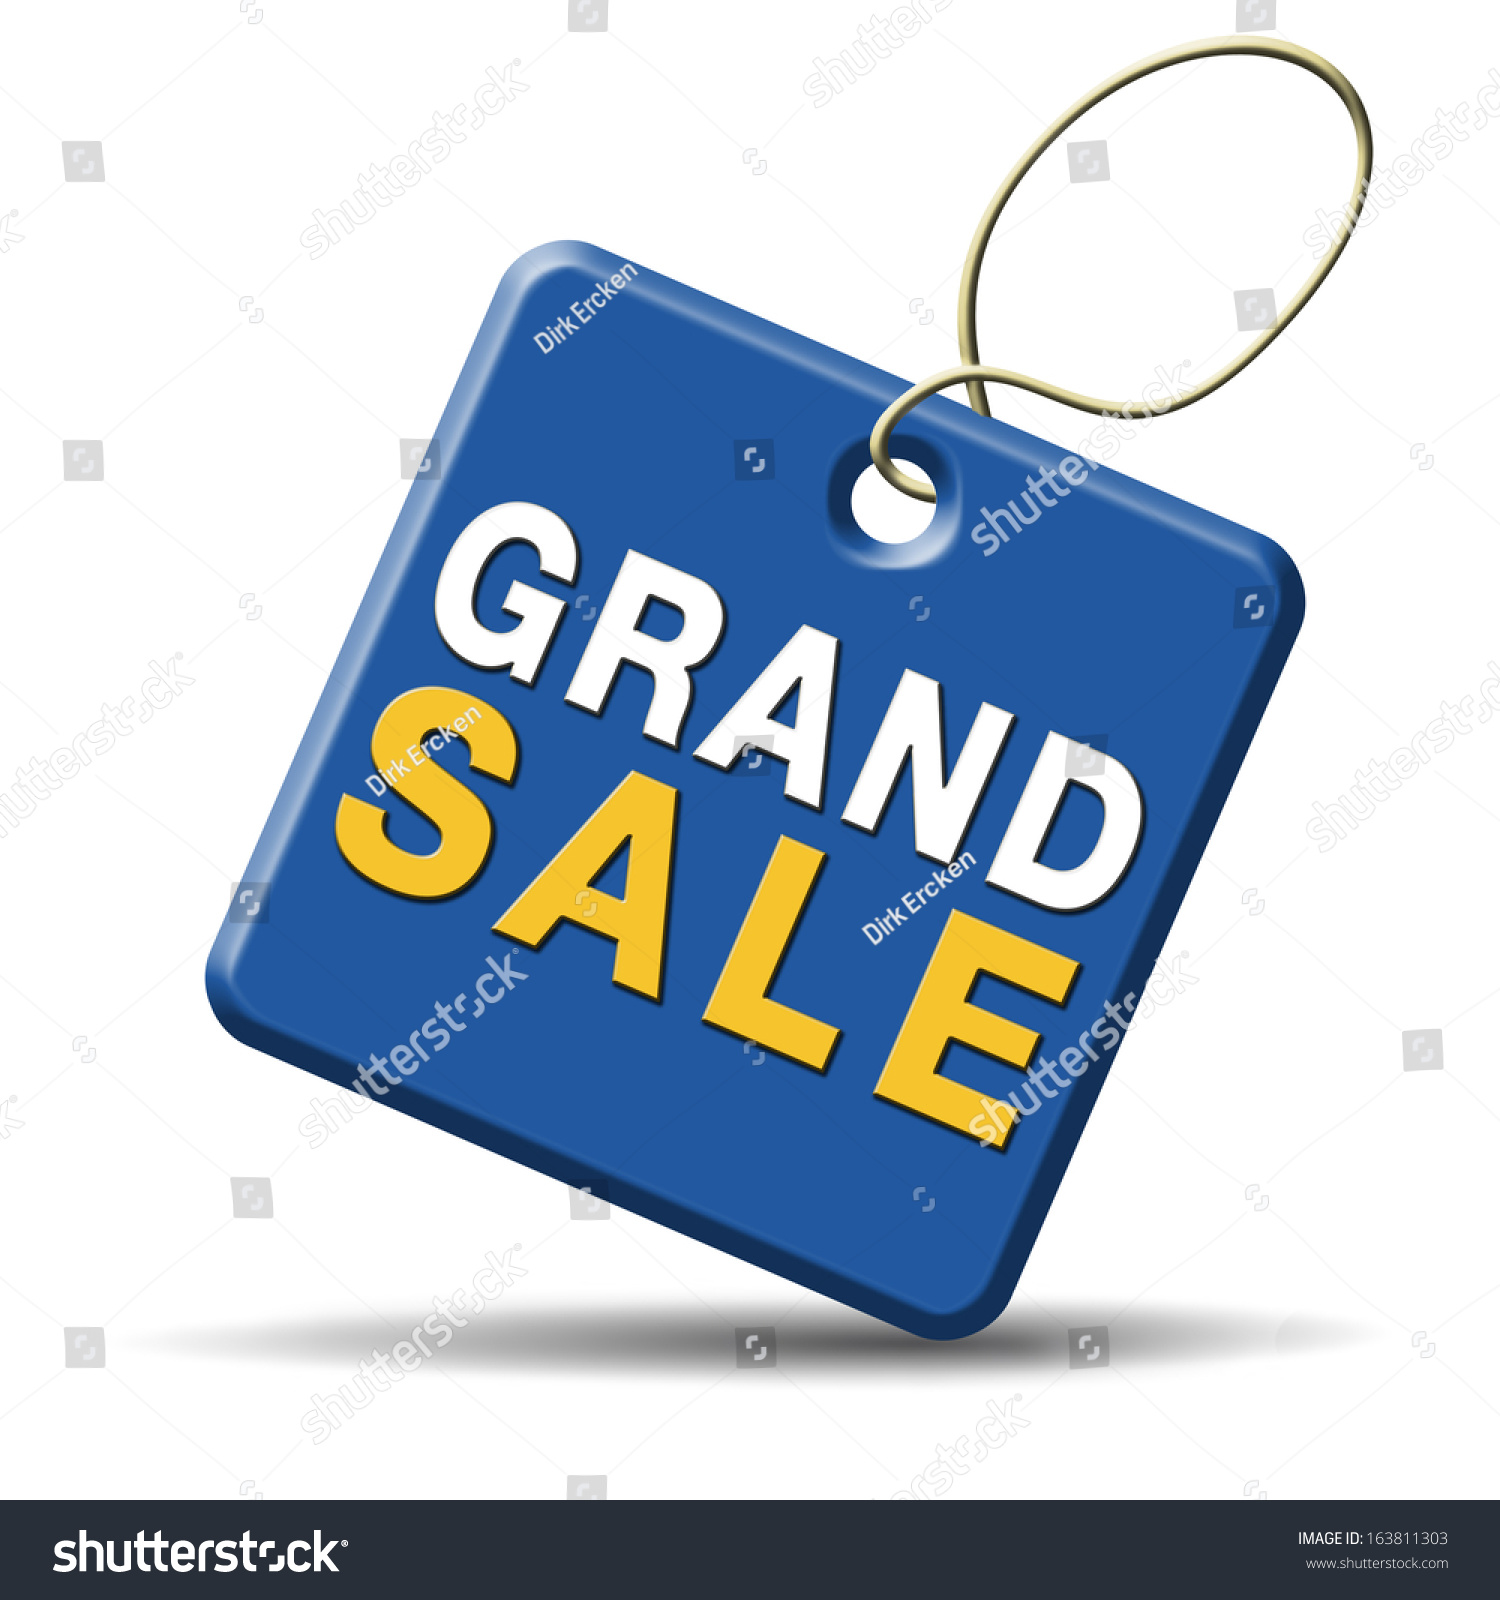 grand sale sales reduced prices off stock illustration 163811303